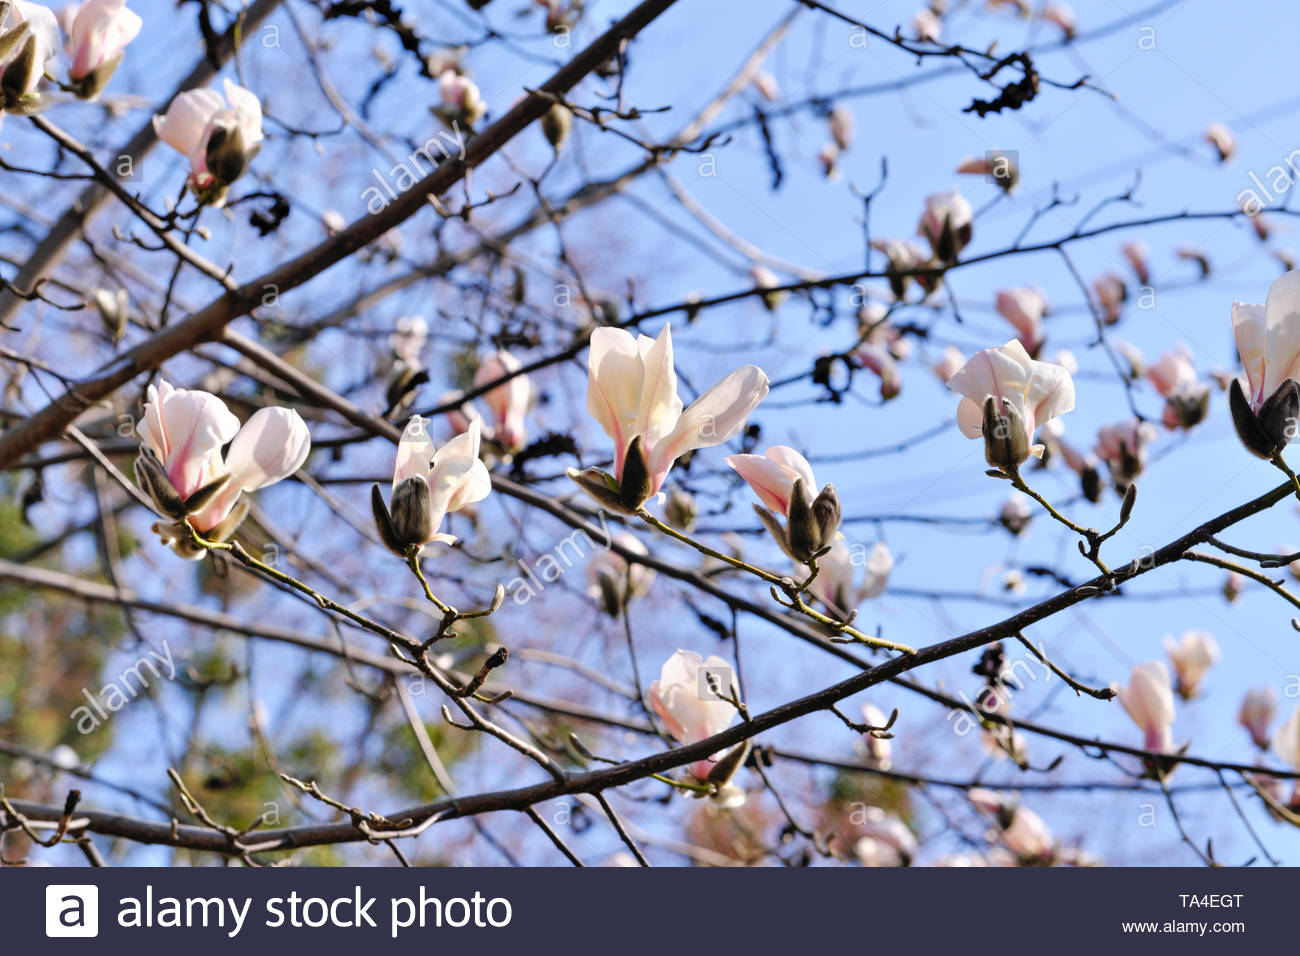 Magnolia blooms on a bright spring day in the botanical garden, flower buds - Stock Image